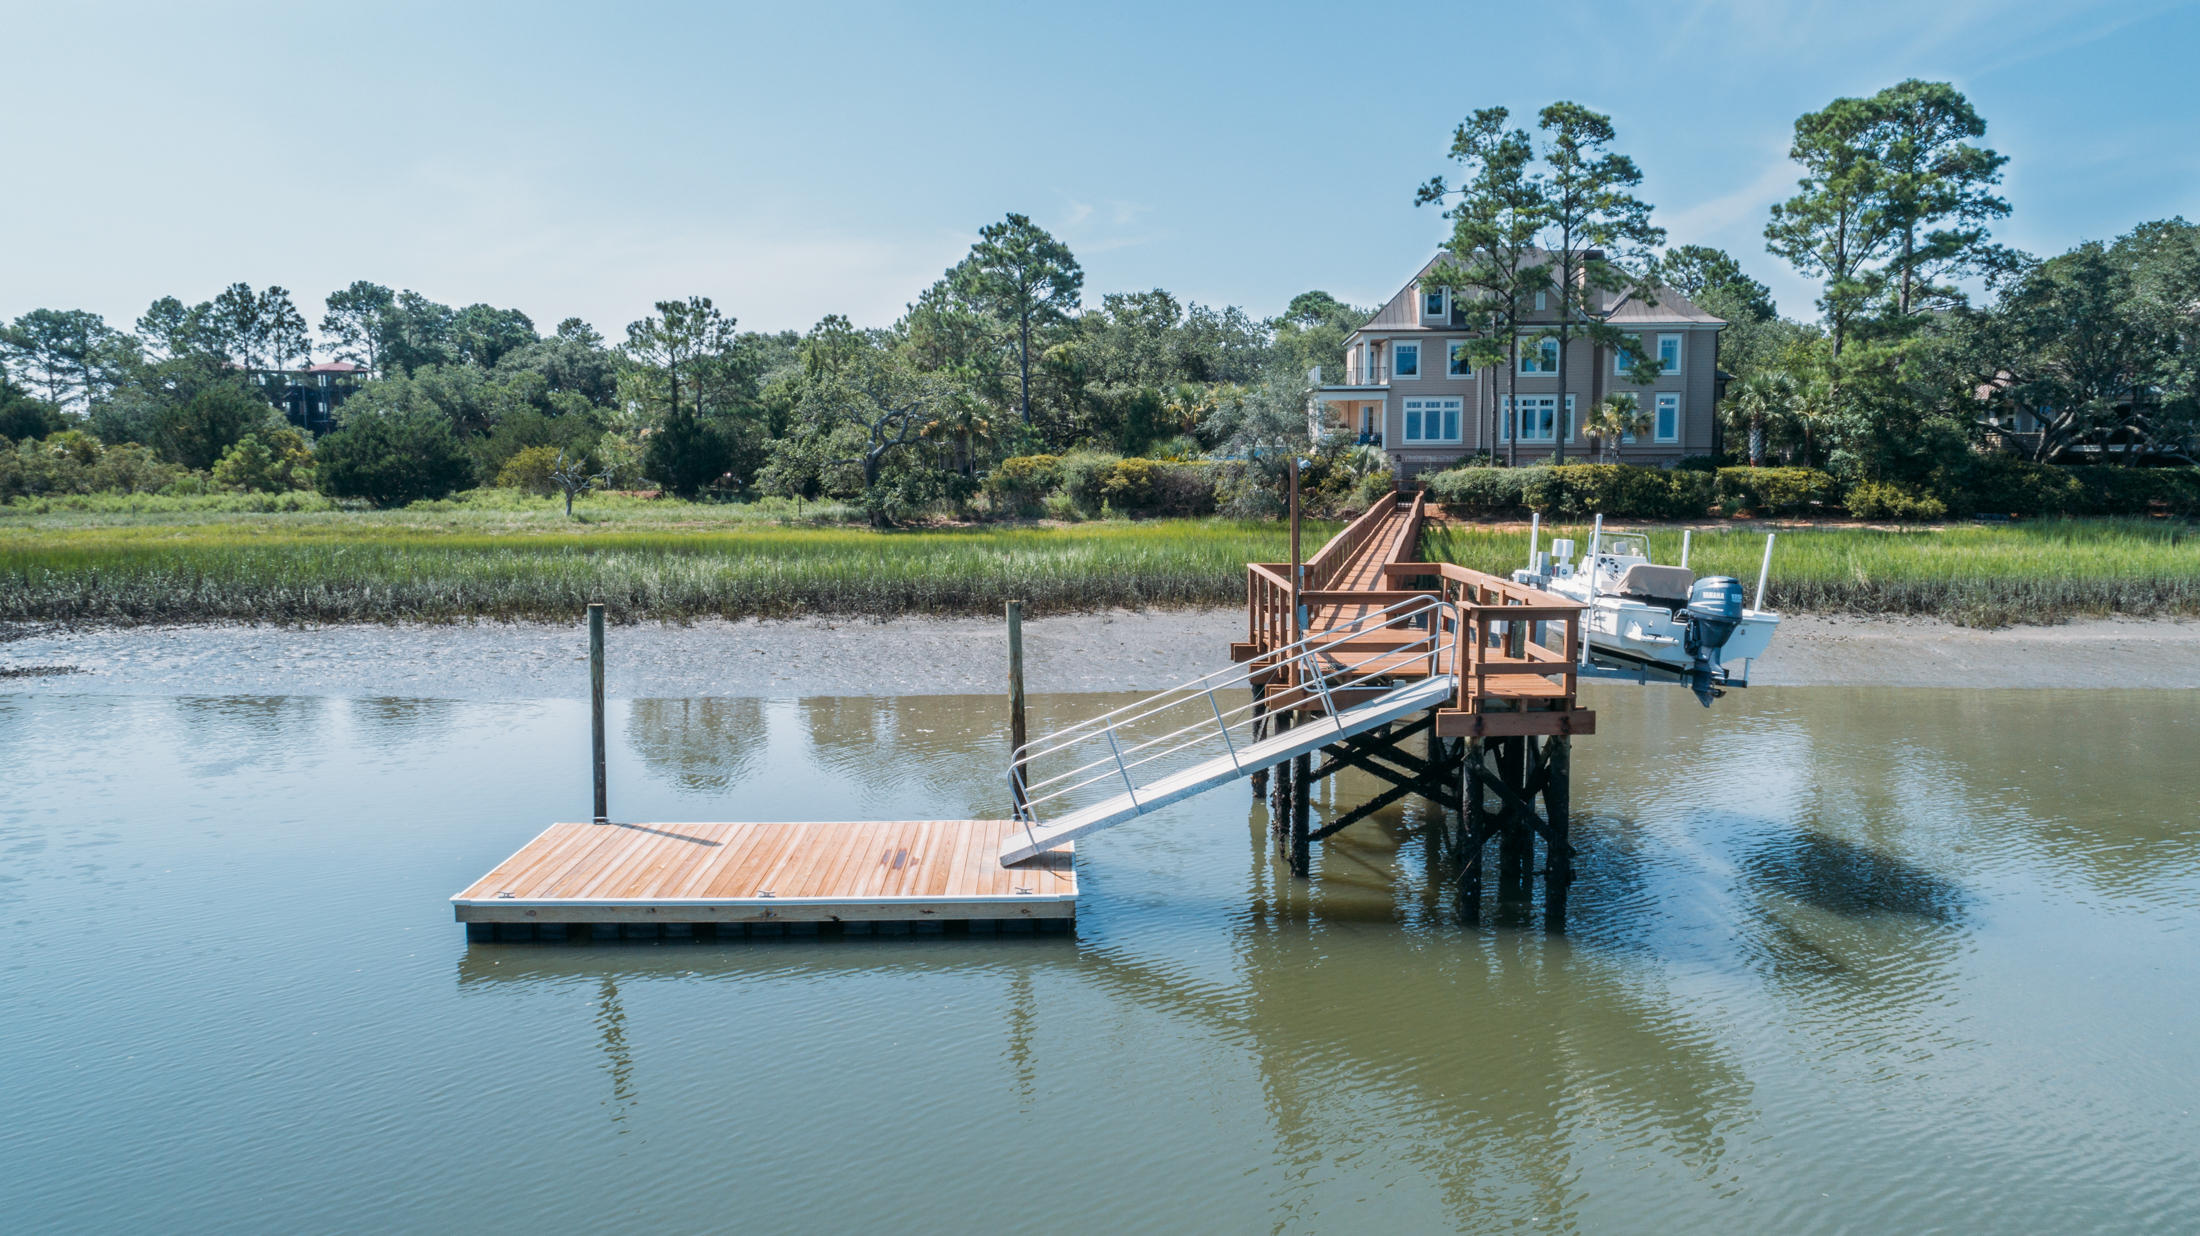 Kiawah Island Homes For Sale - 29 Rhetts Bluff, Kiawah Island, SC - 0